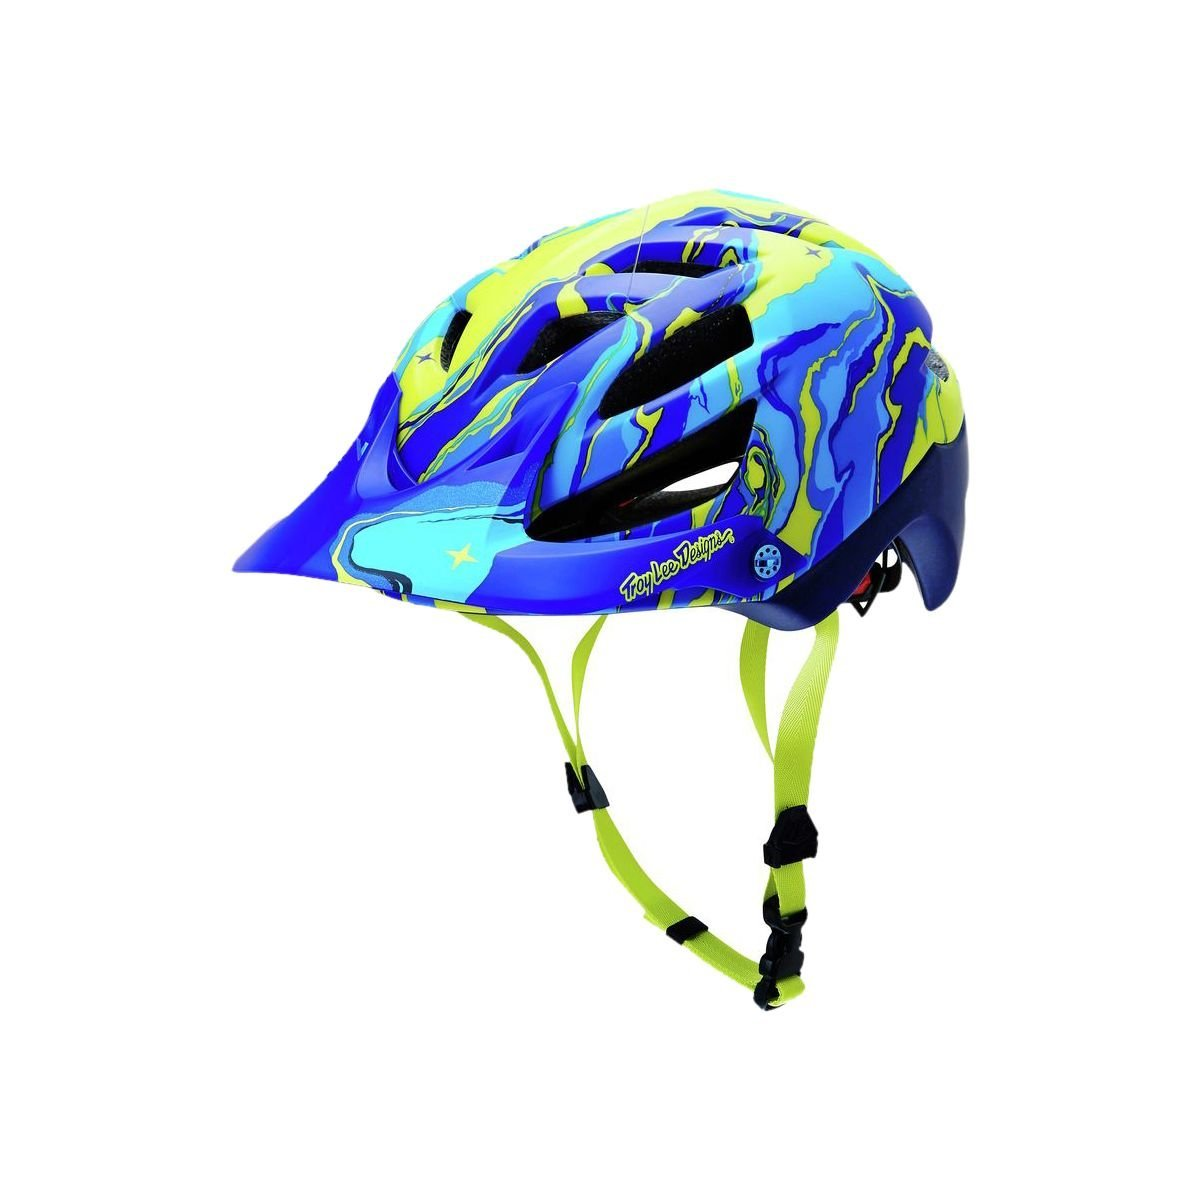 Blue Troy Lee Designs Bicycle Helmets